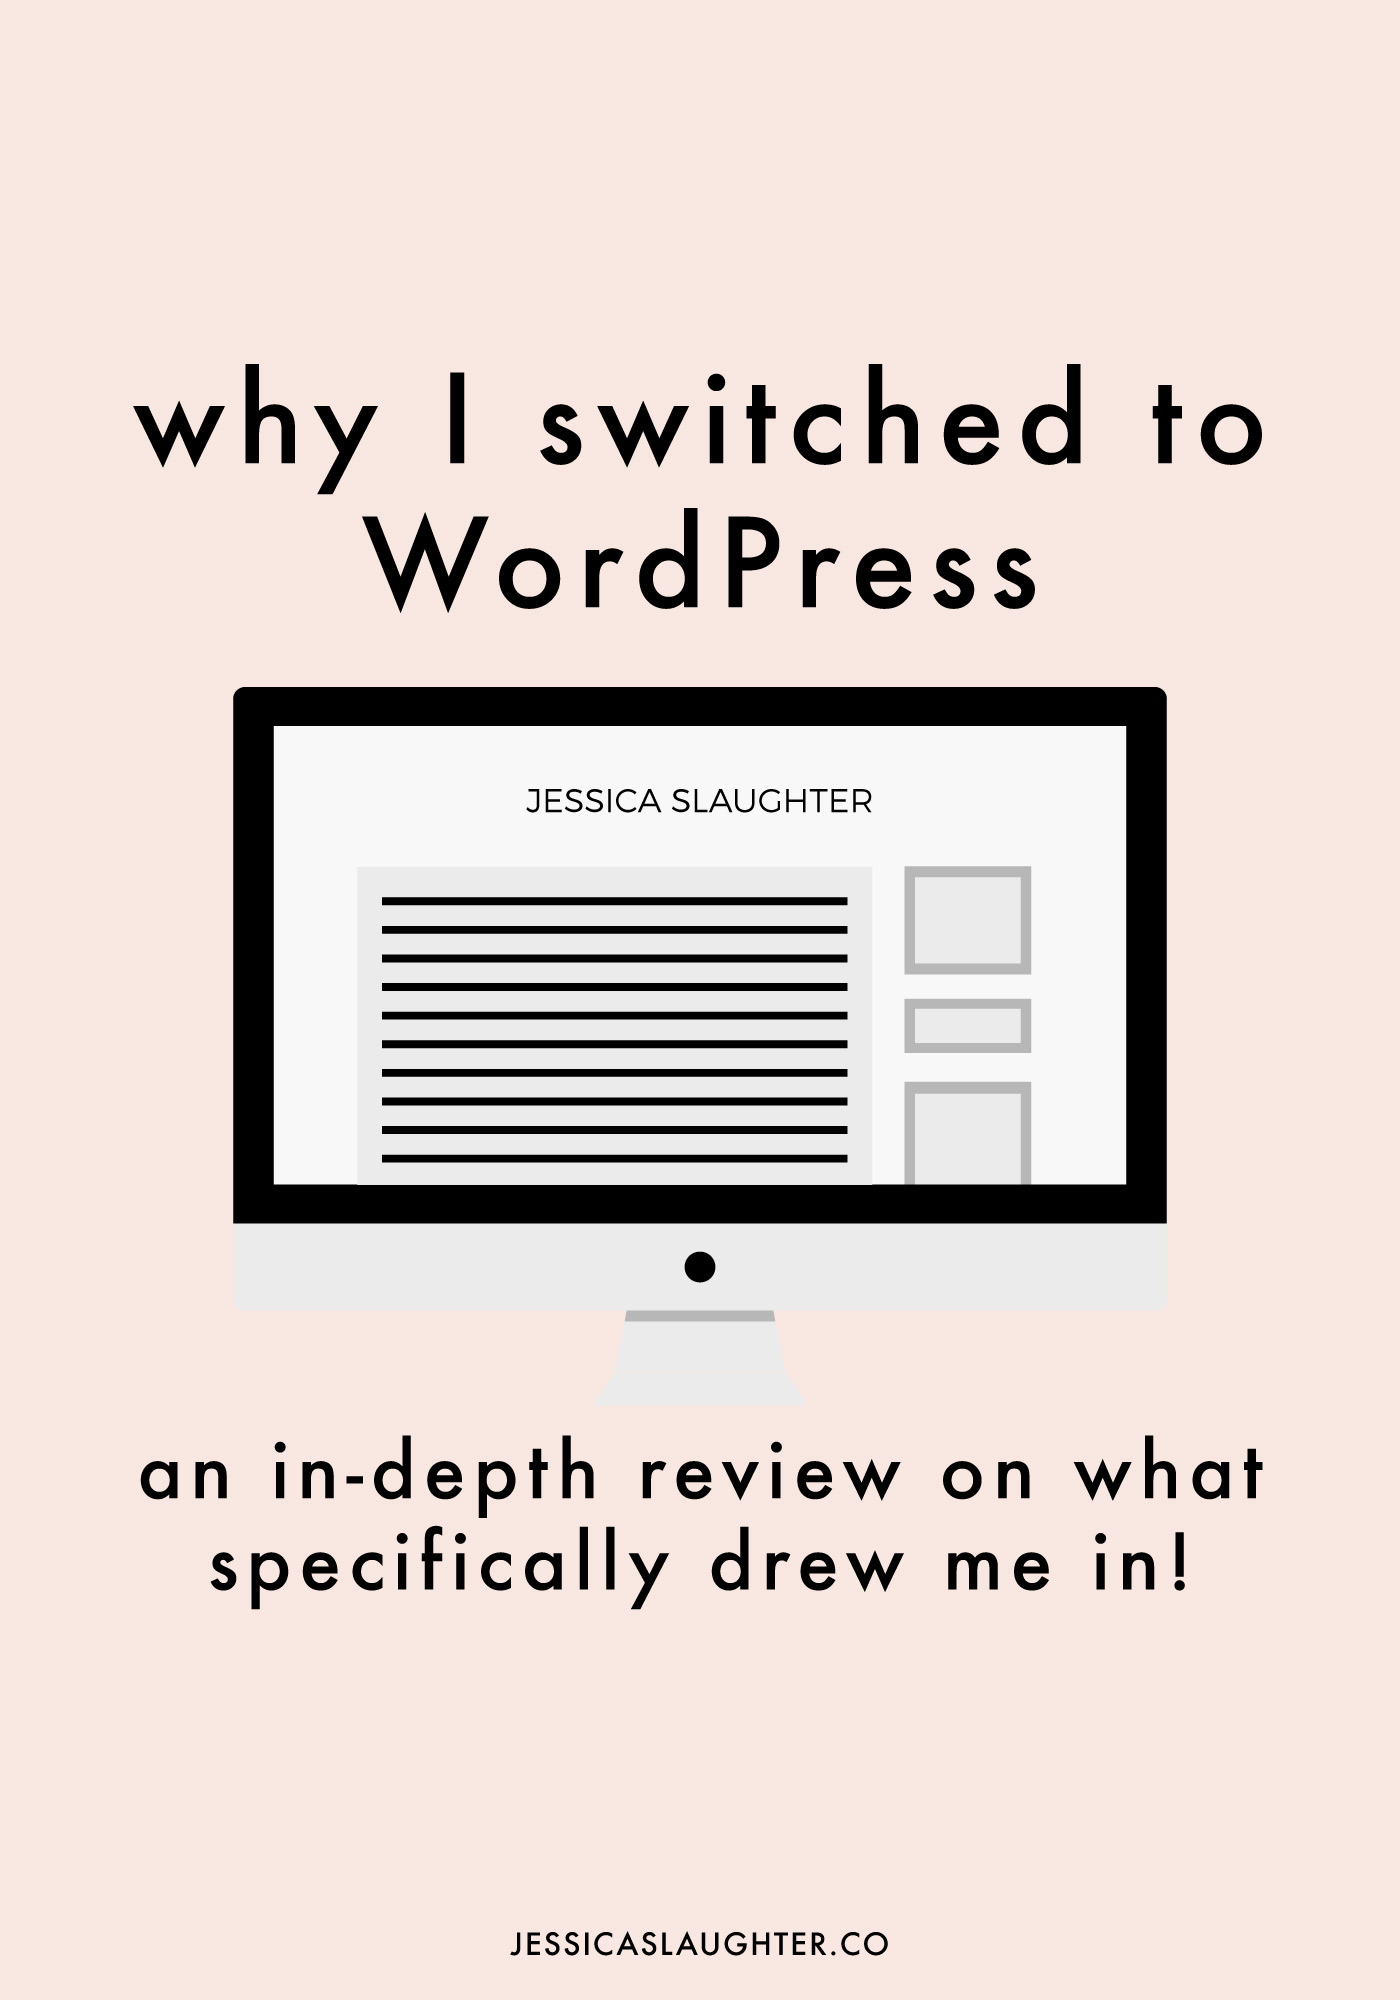 An in-depth review on why I made the switch from Blogger to WordPress.